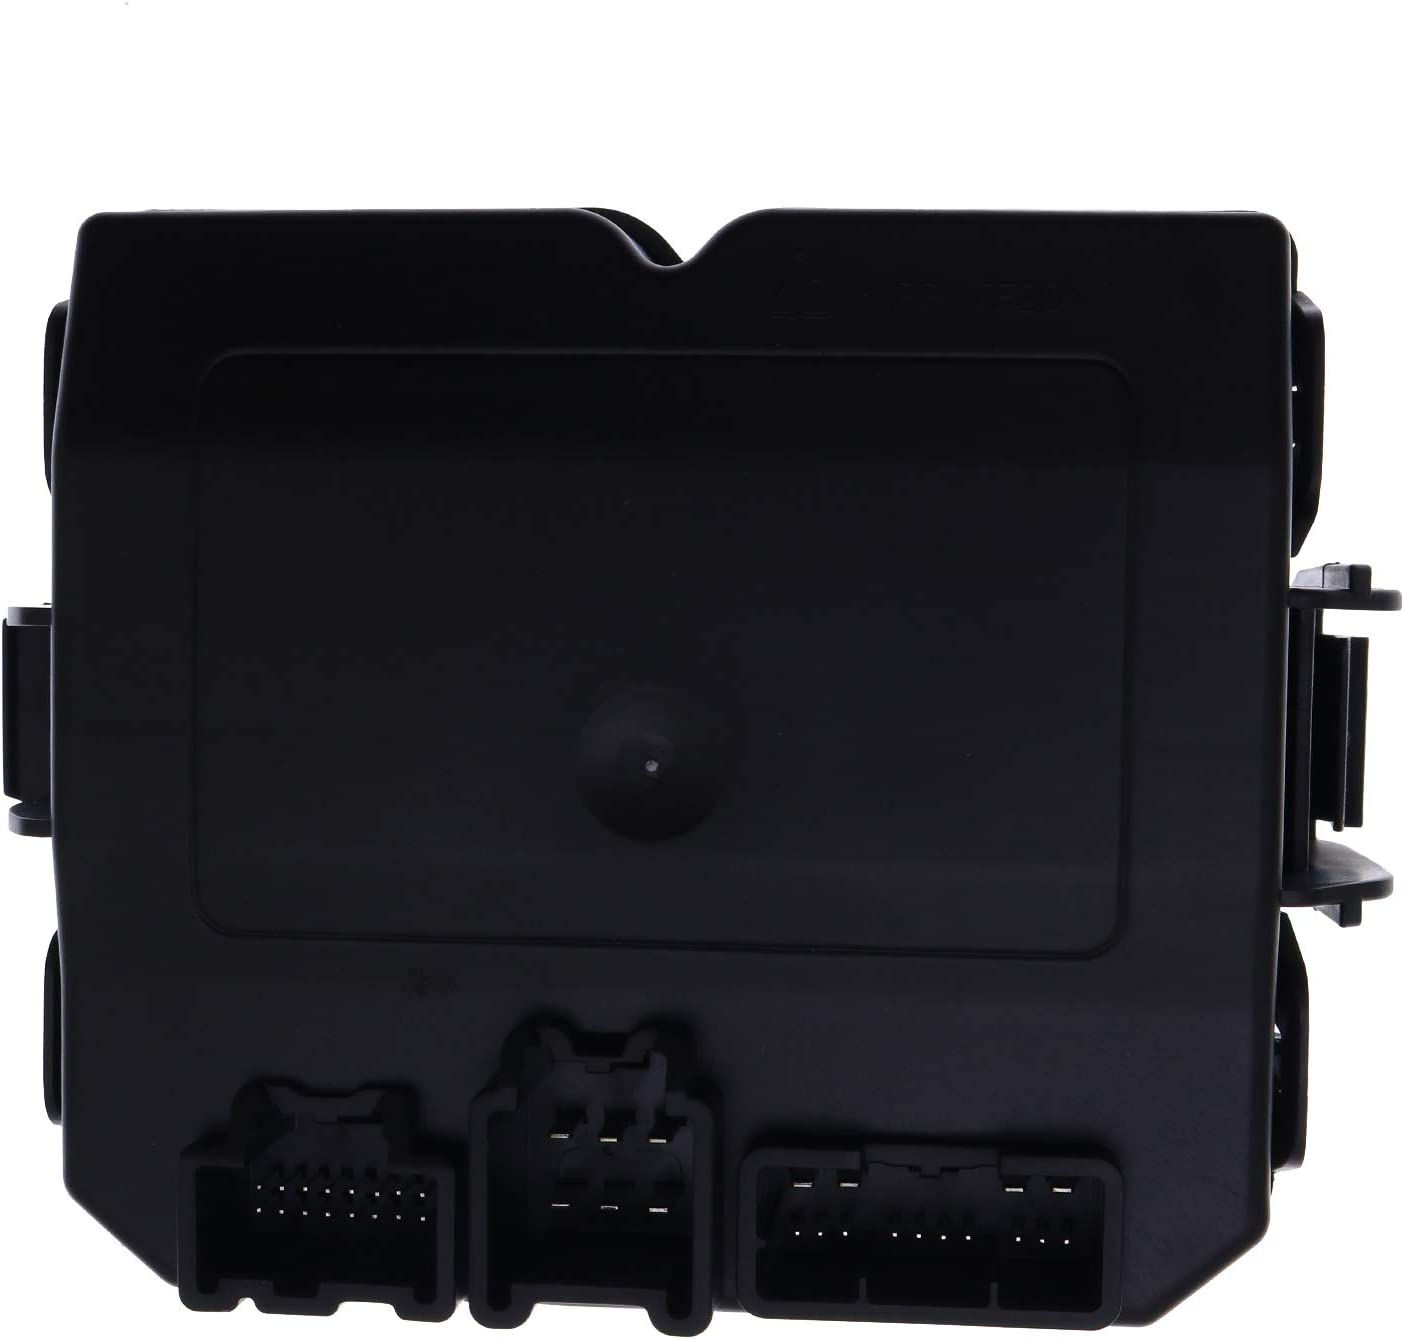 Friday Part Liftgate Control Module 20837967 for 2010-2015 Cadillac SRX 2.8 3.0 3.6L